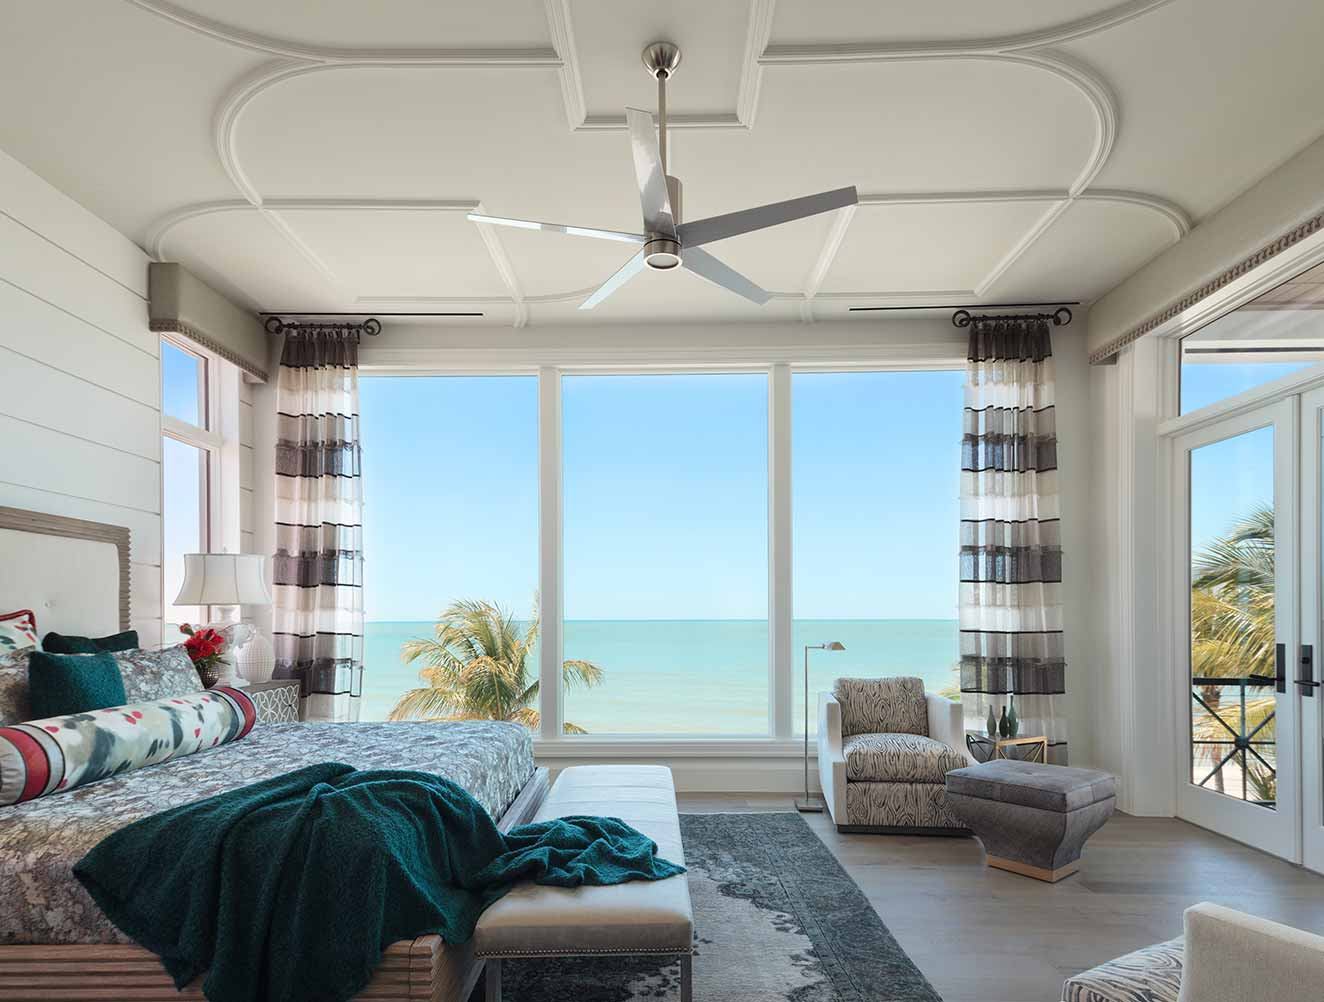 Master bedroom with ocean views in a Naples Florida, single family home. Designed by Kukk Architecture & Design Naples.